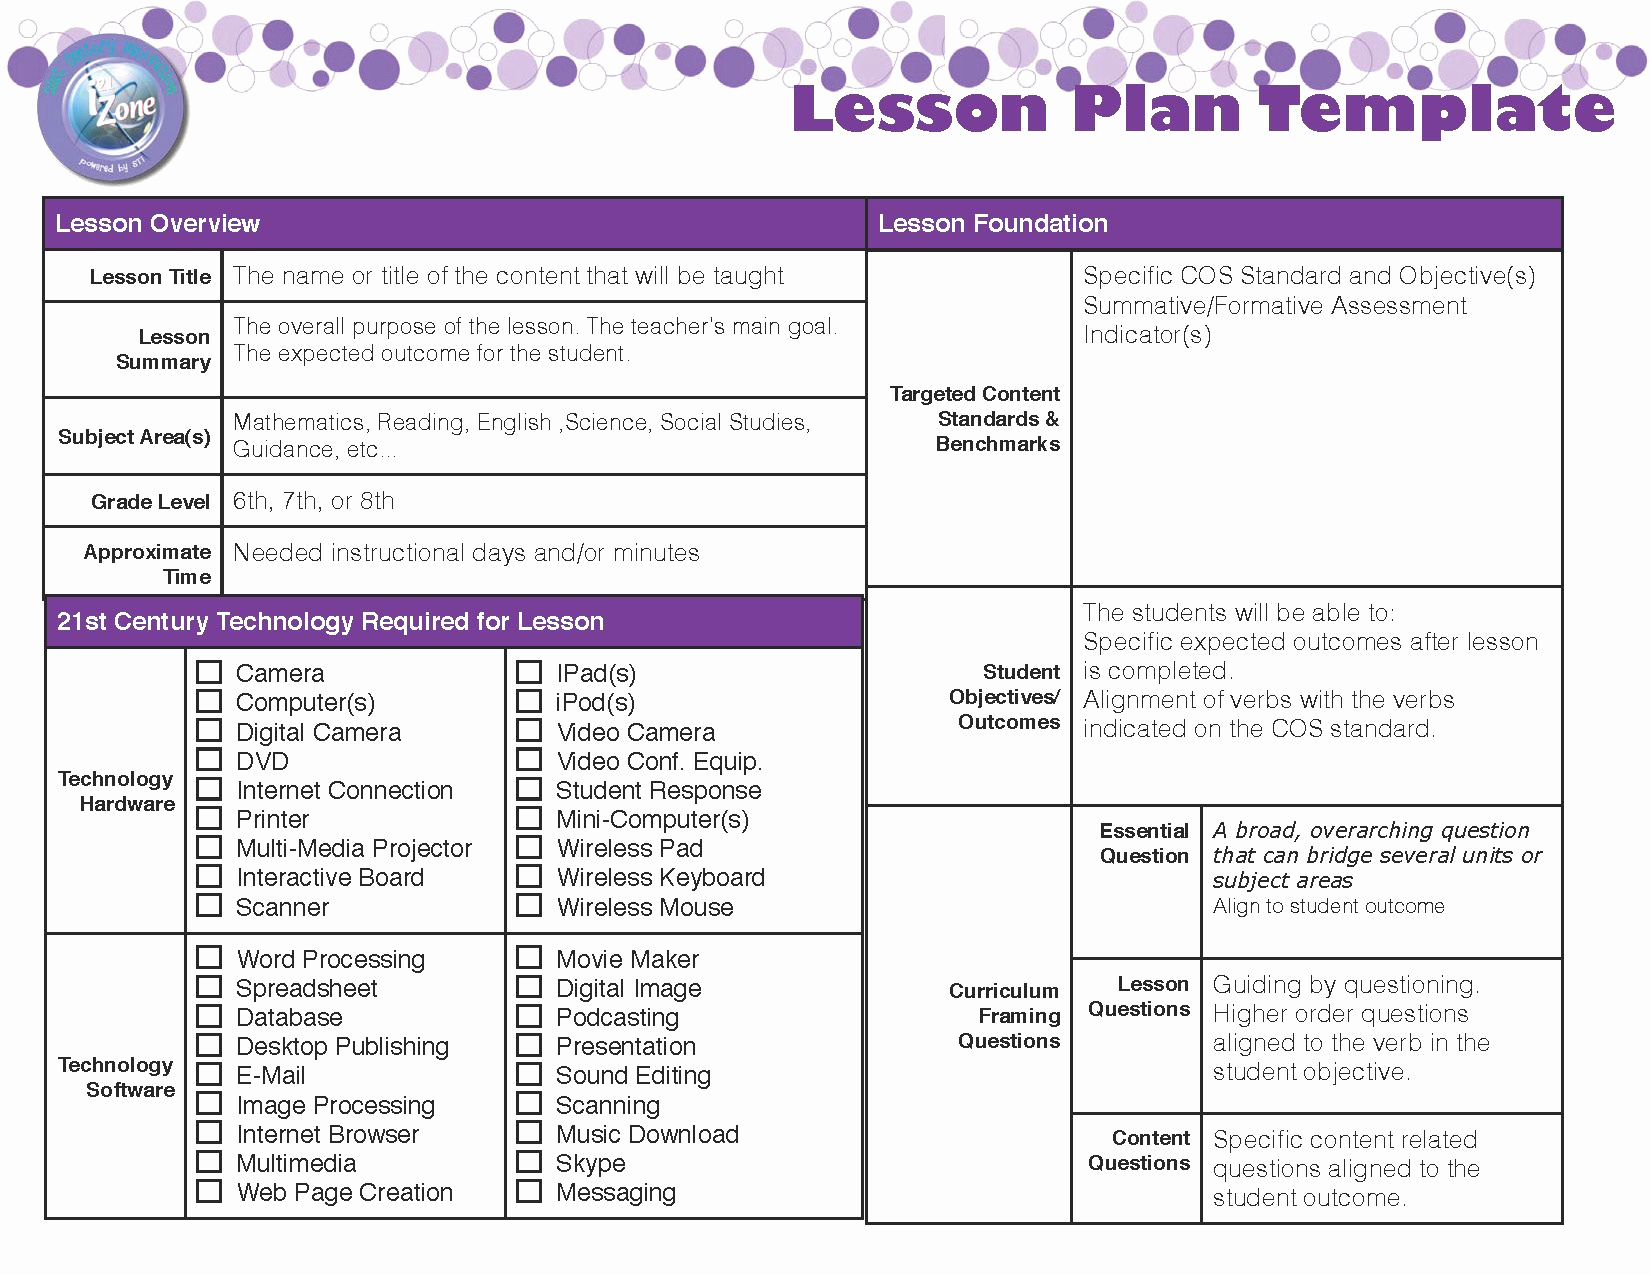 Sample Lesson Plan Template New Lesson Plan Template